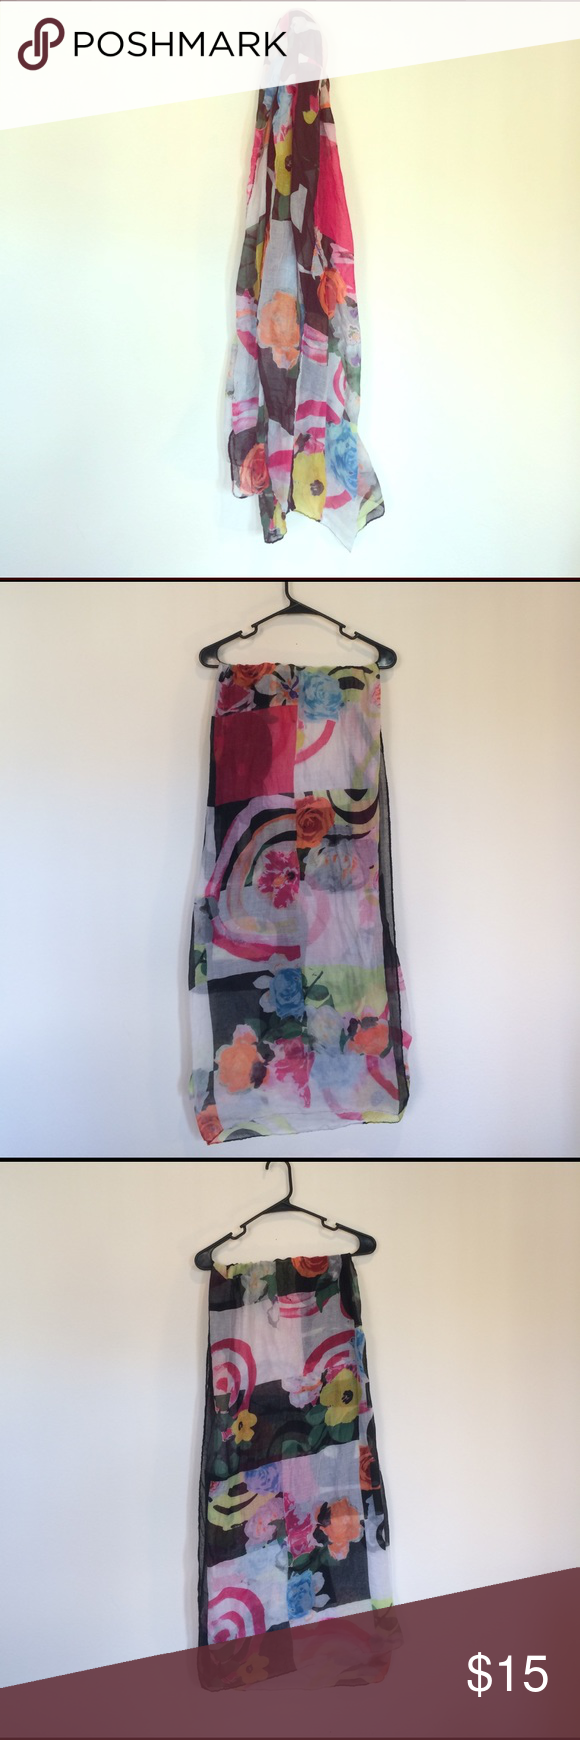 """Desigual Pink/White/Black Scarf. One Size. White/pink/black scarf by Desigual. Spells """"Desigual"""" when laid flat. Lightly worn. One Size. Desigual Accessories Scarves & Wraps"""